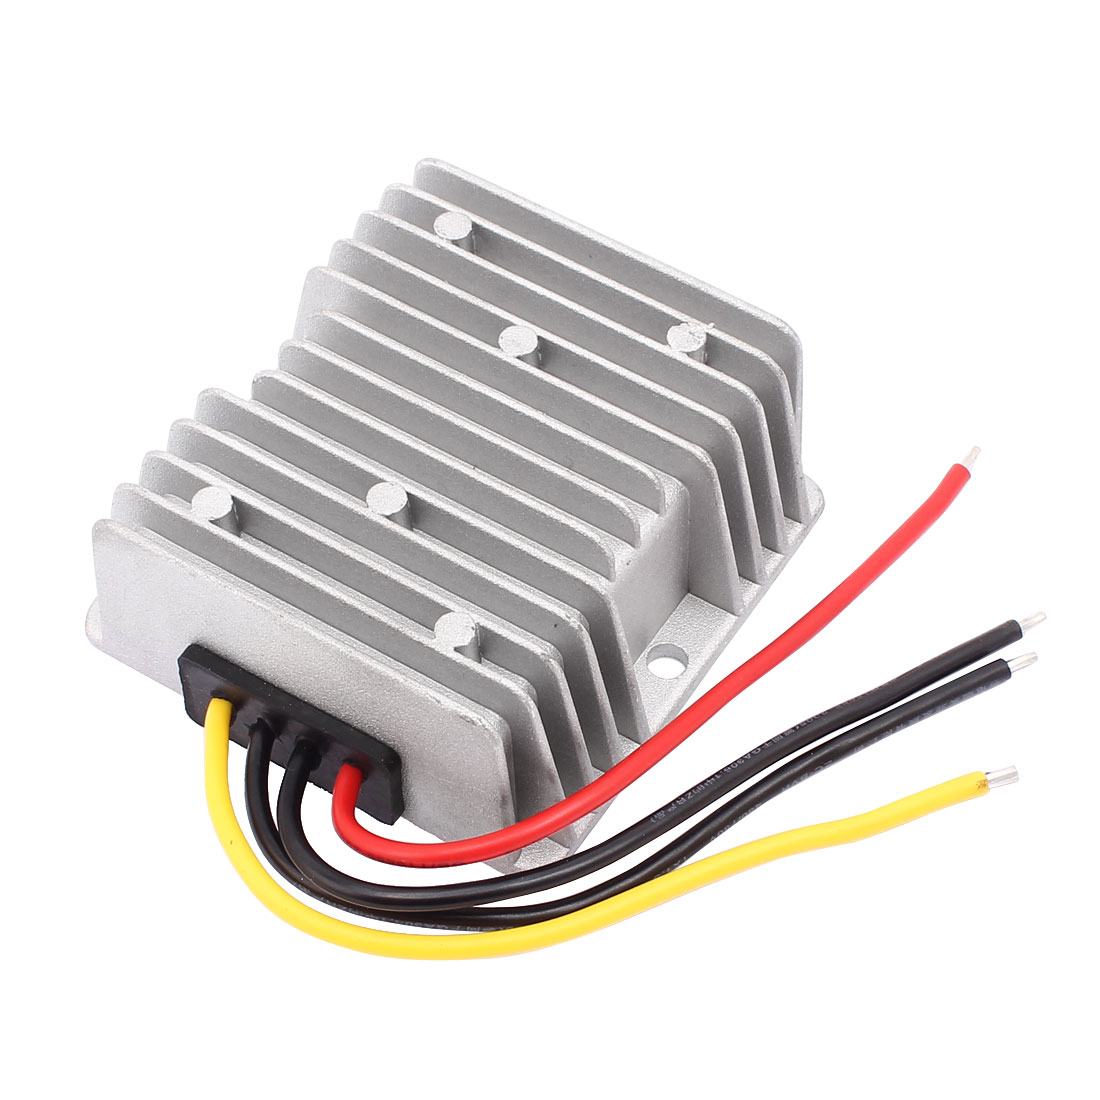 DC12V/24V(12V-40V) Step-up to DC9V 30A 270W Waterproof Power Converter Regulator Transformer